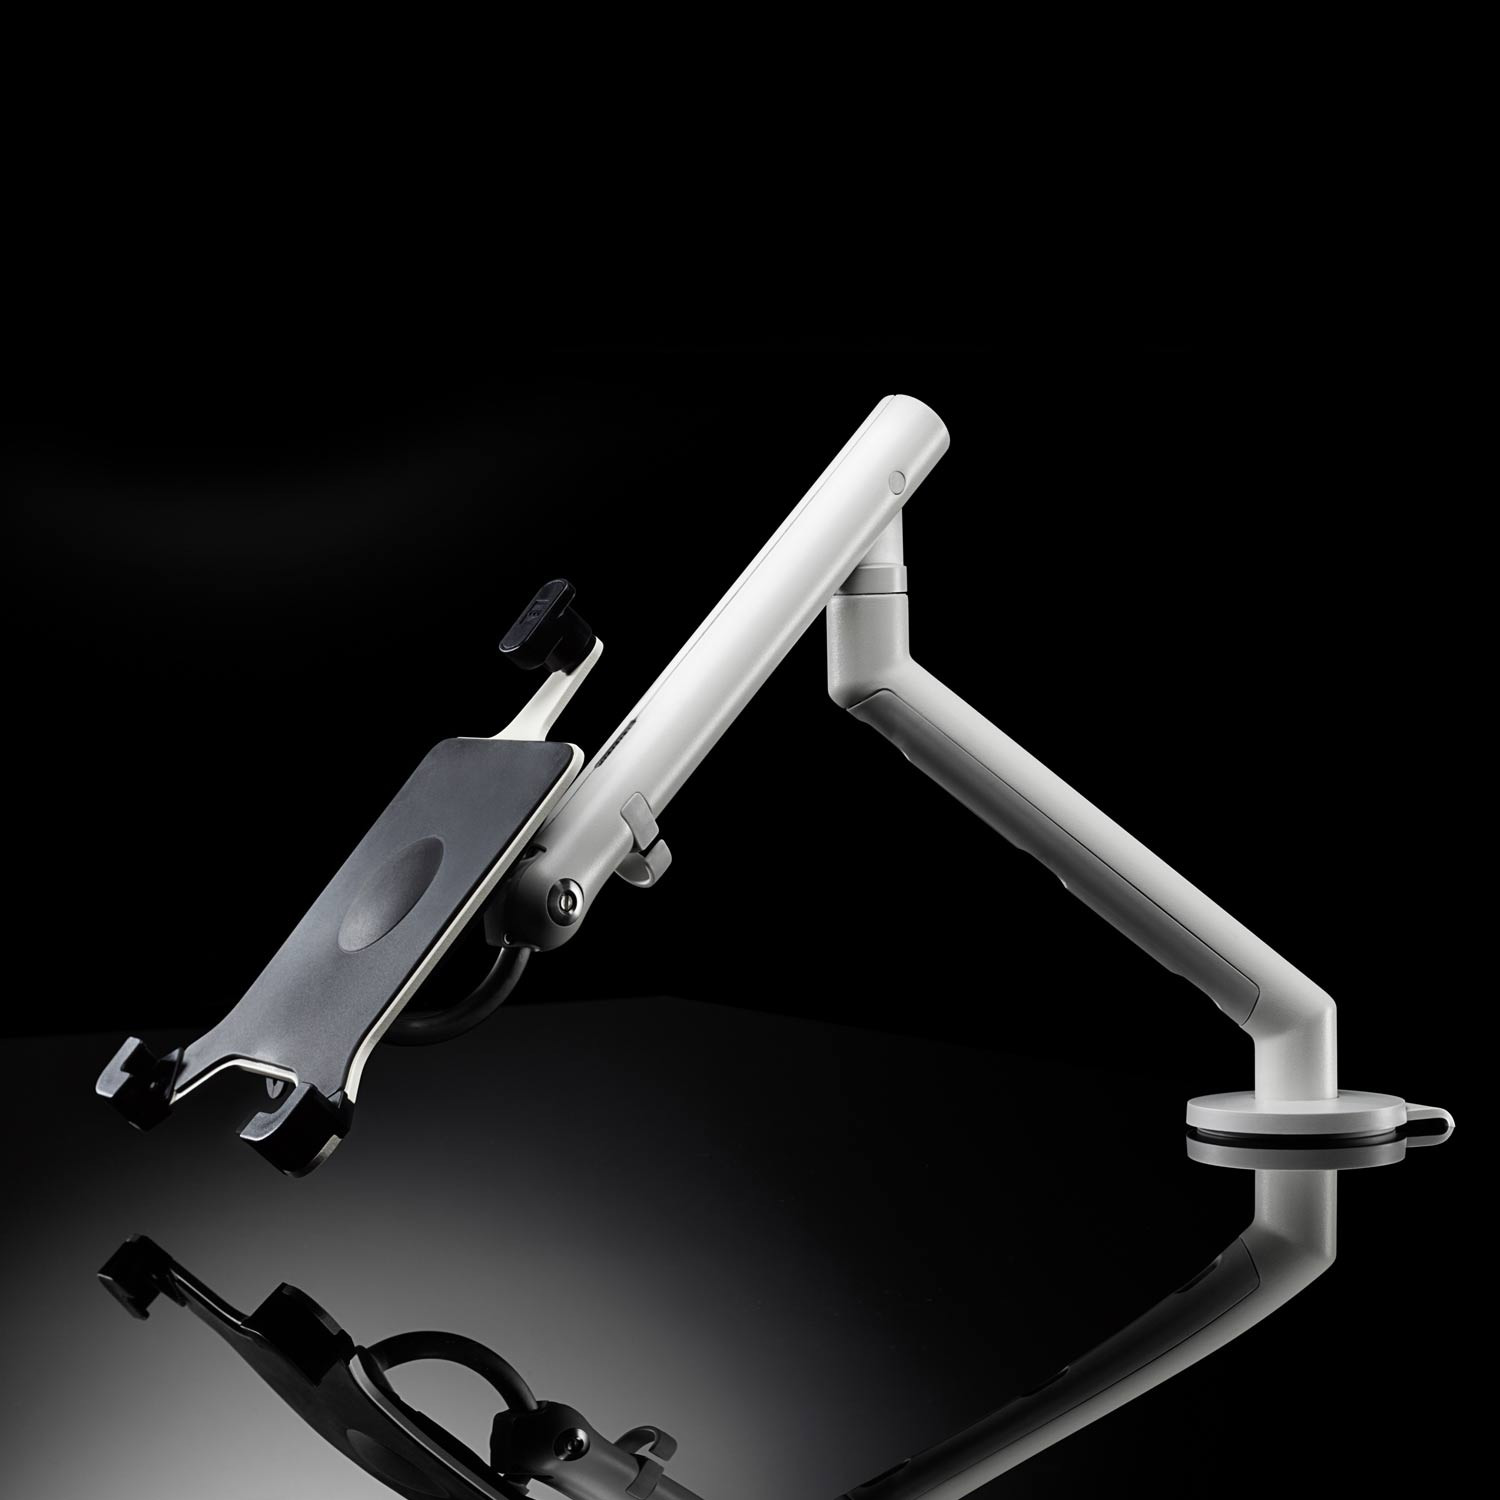 CBS Flo Dual Monitor Arm With Tablet Mount